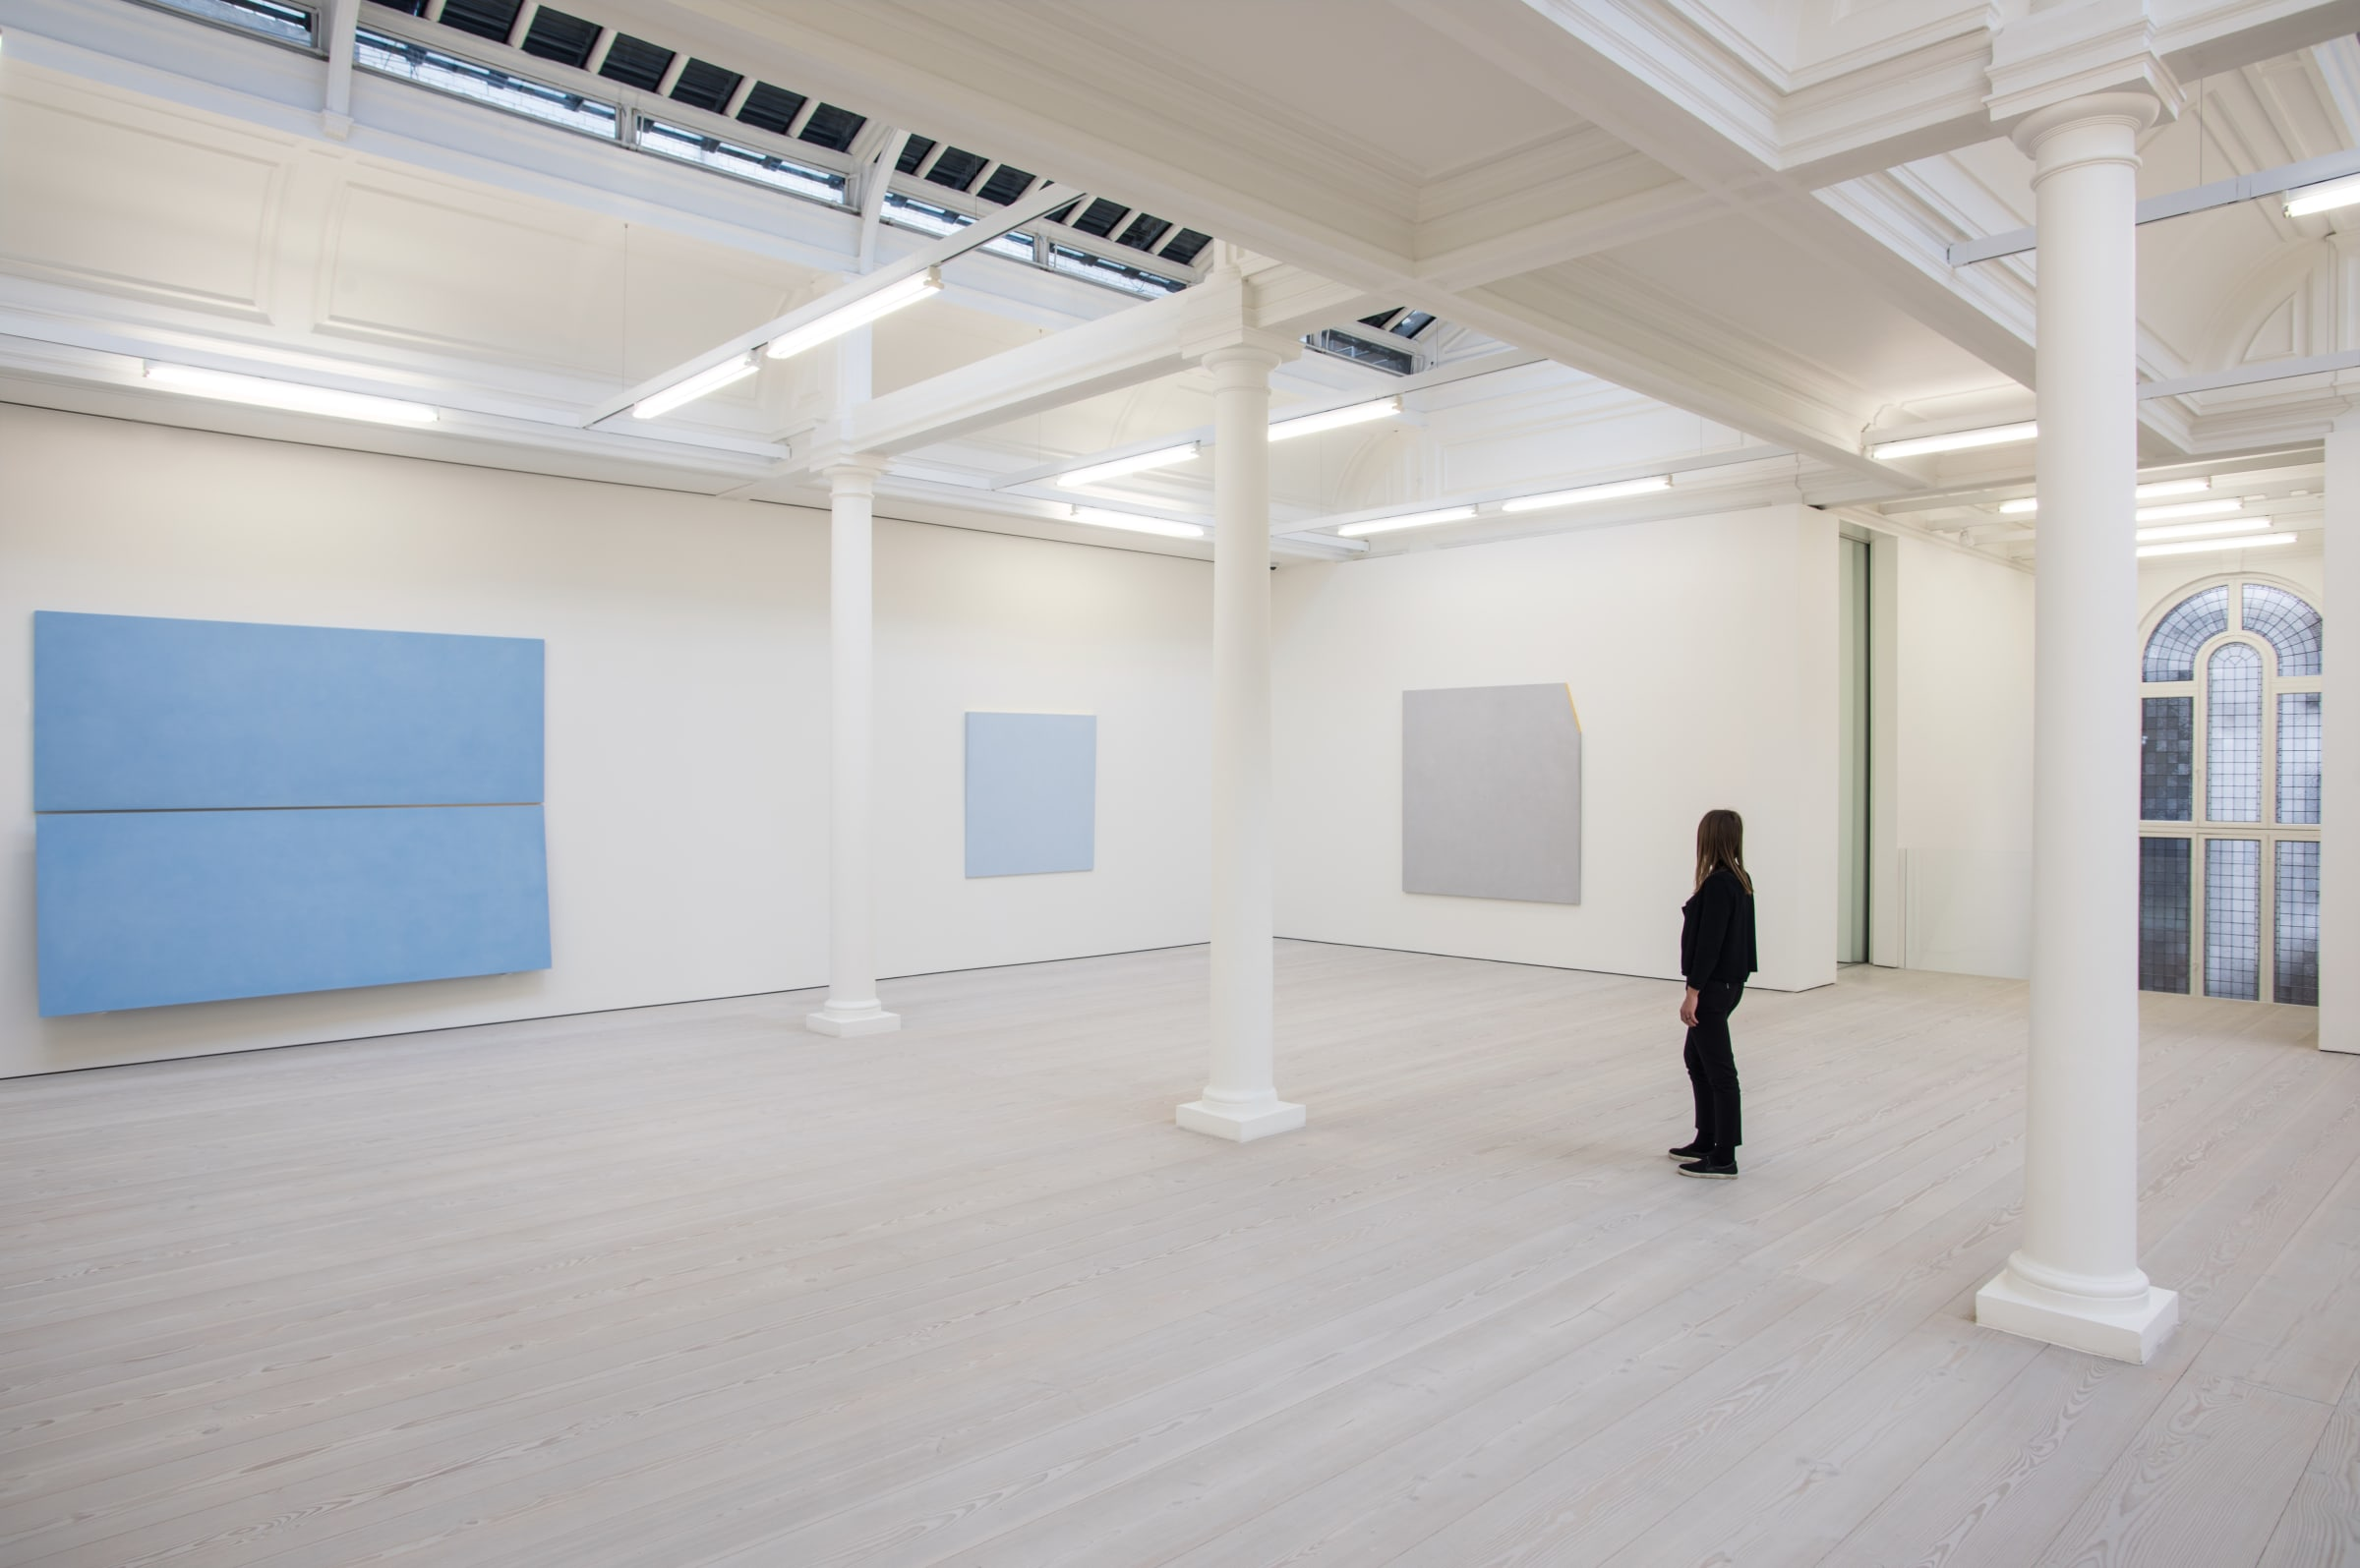 In a large white space with columns, two large light blue paintings hang, with one light grey painting. A woman dressed in black looks at the art.